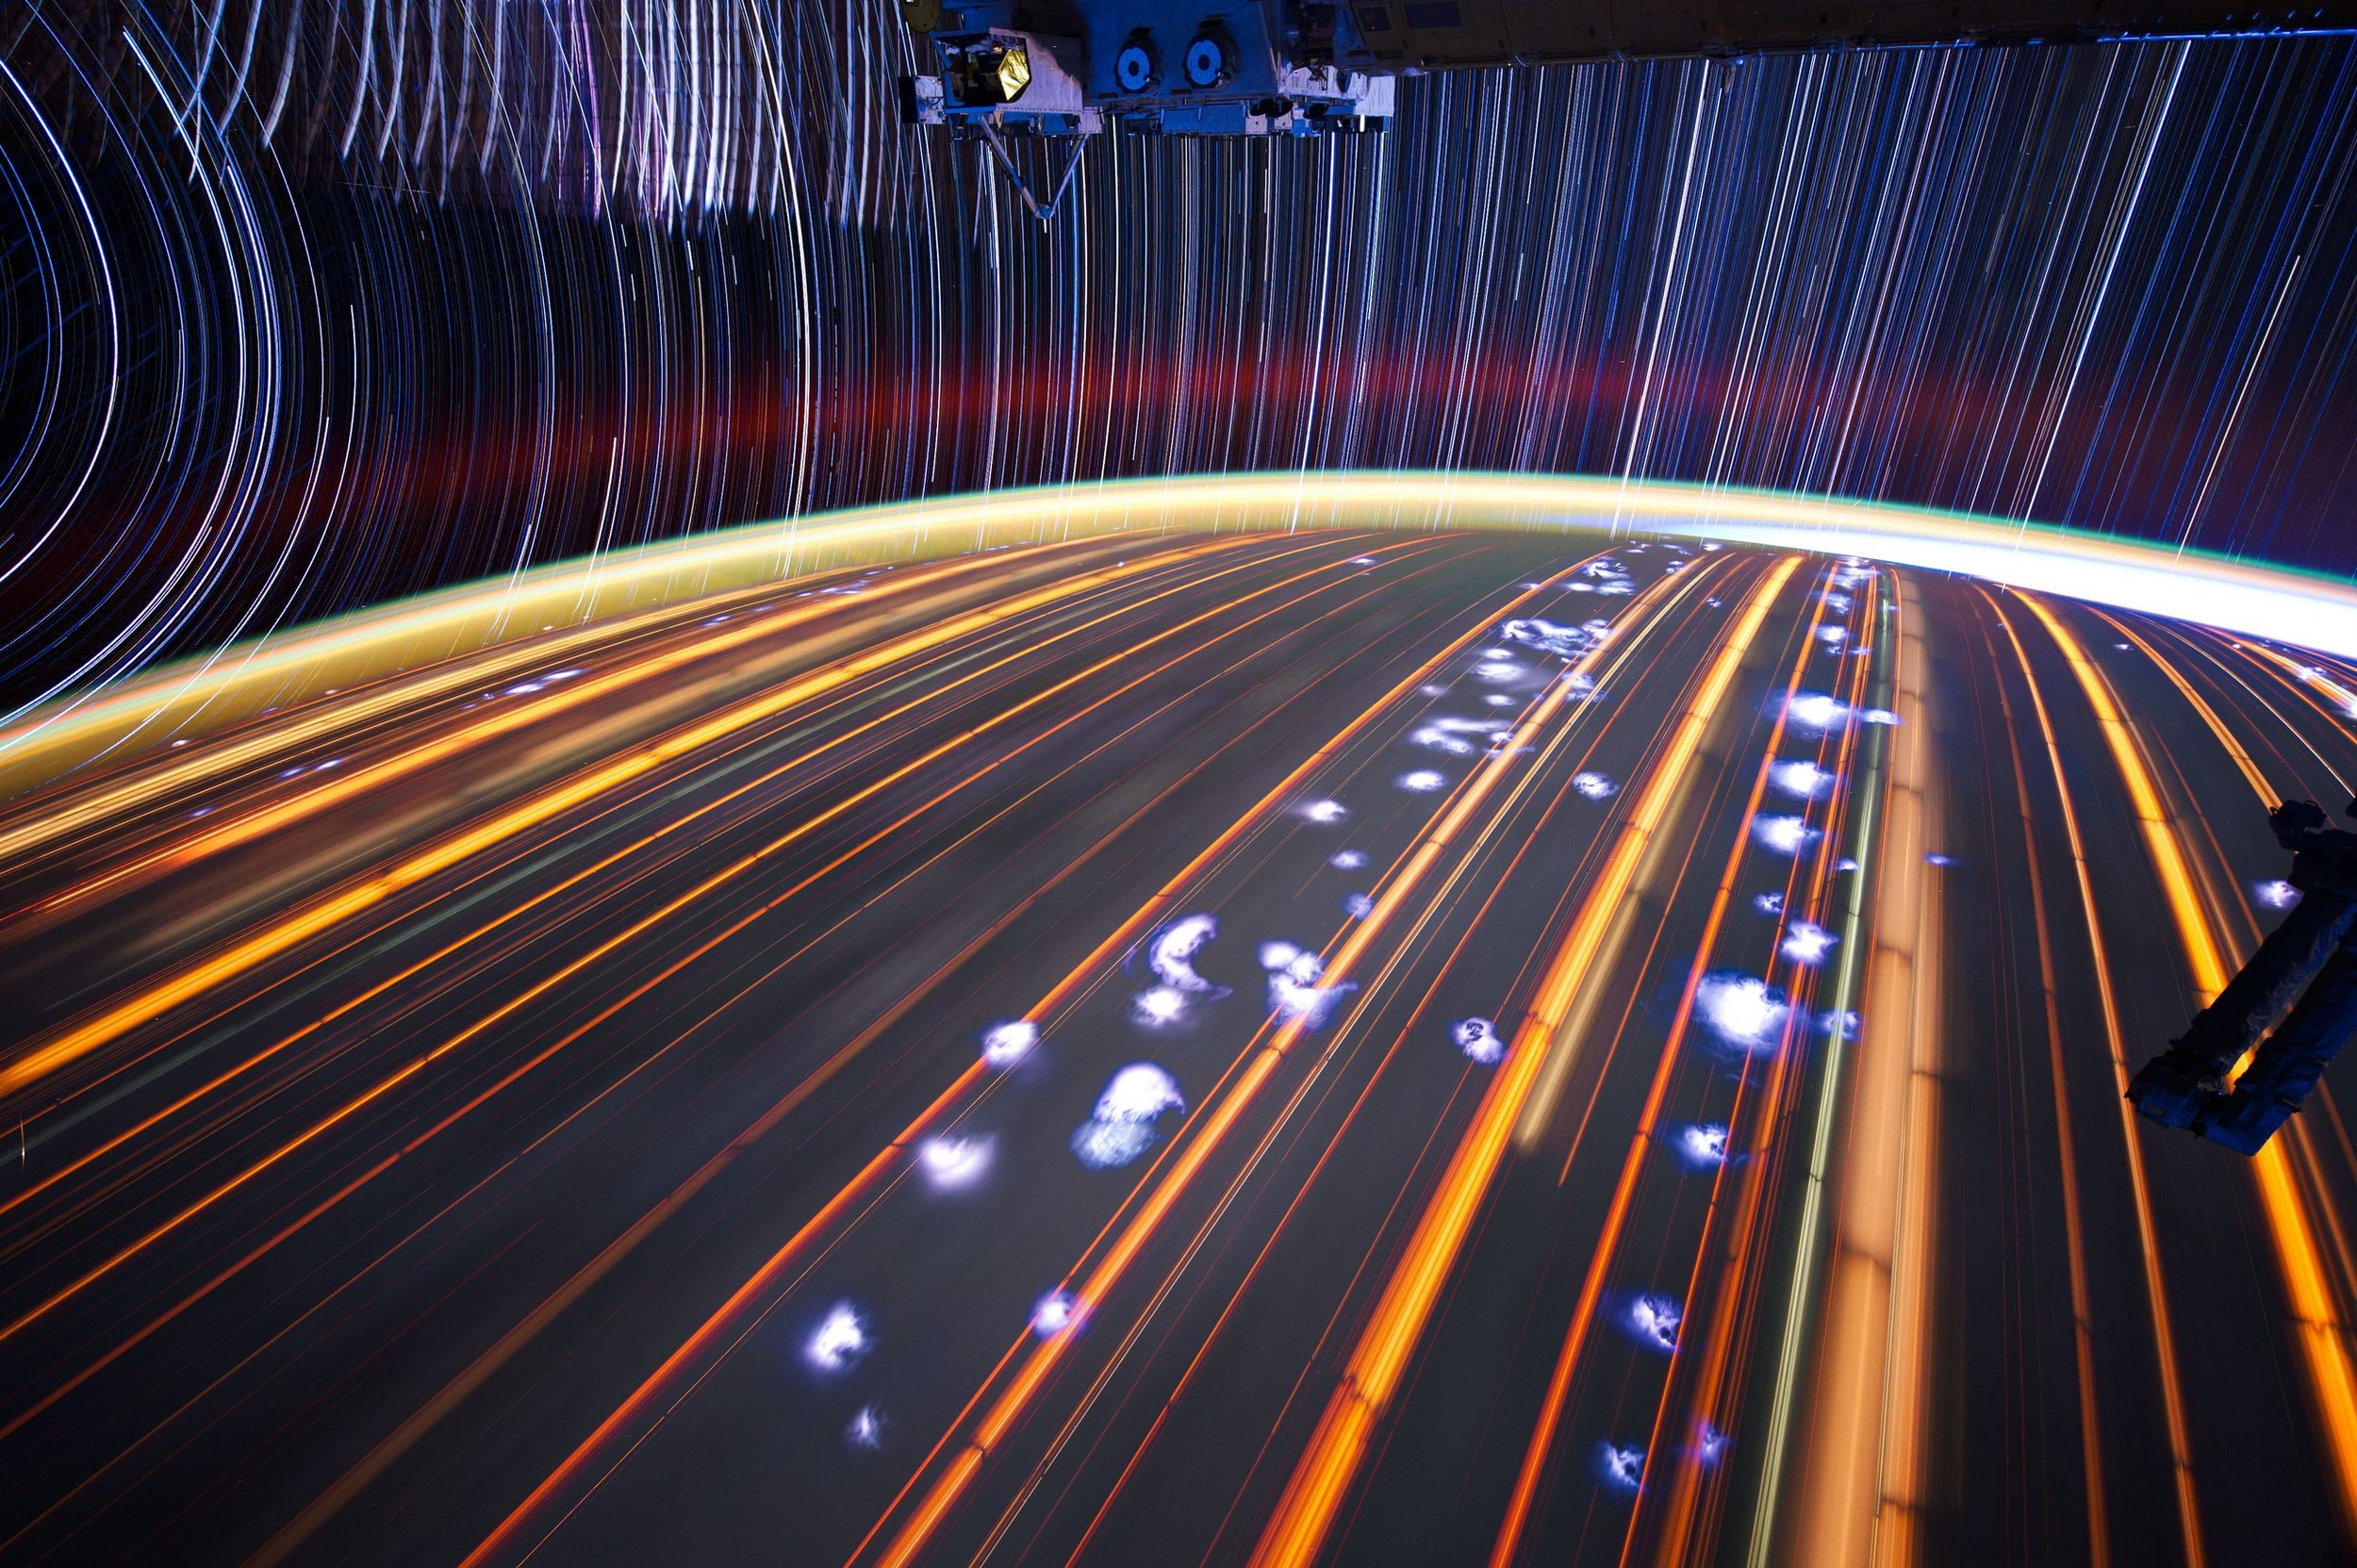 NASA Space Photographer , Expedition 31 star trail composite using iss